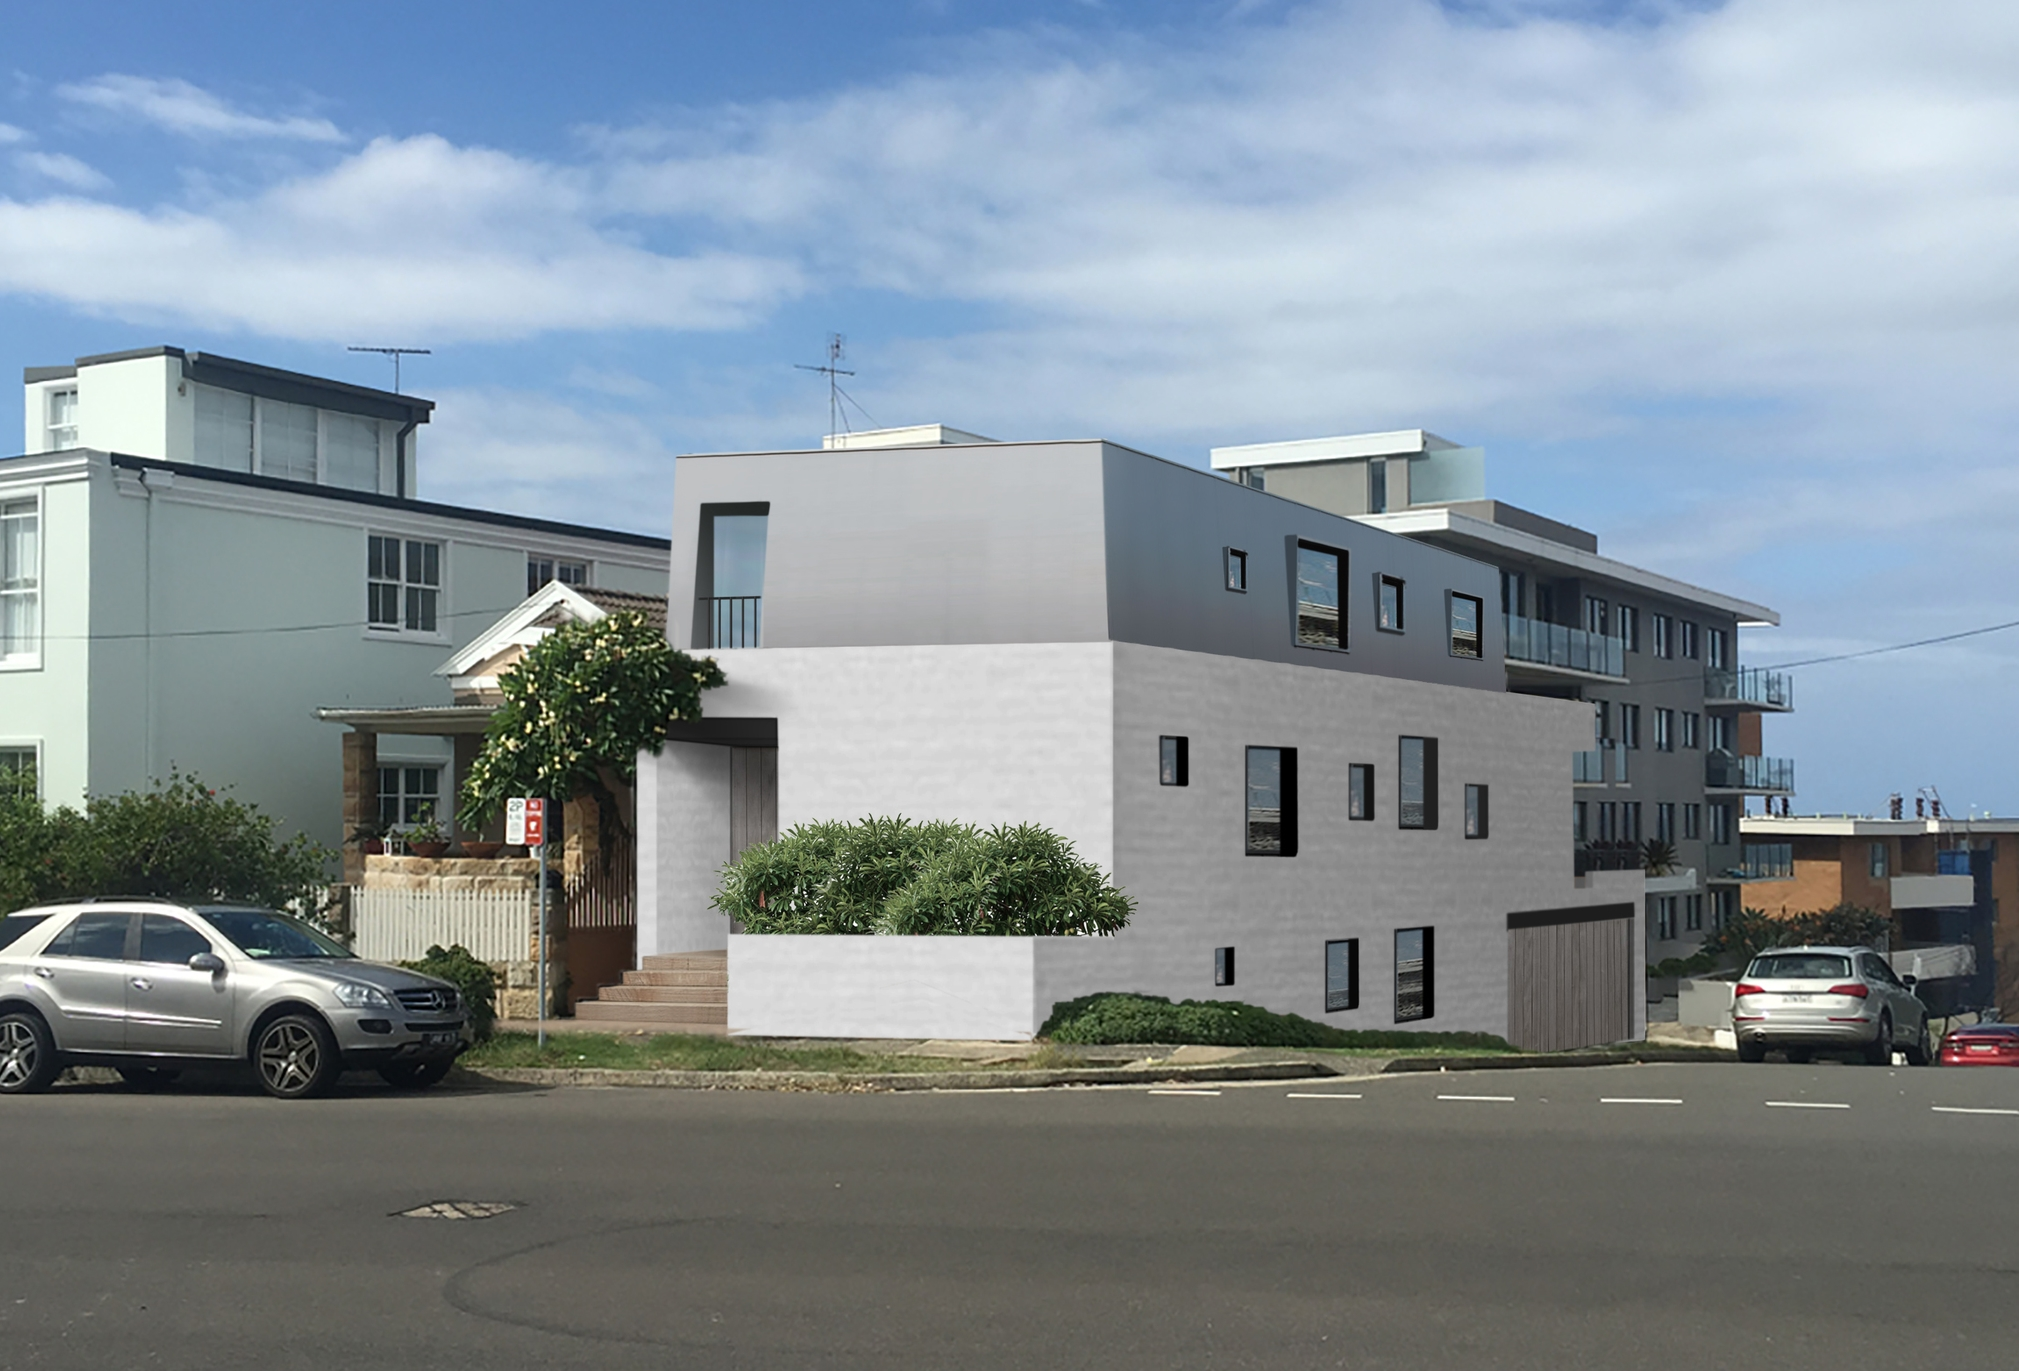 Bondi house concept by Case Ornsby